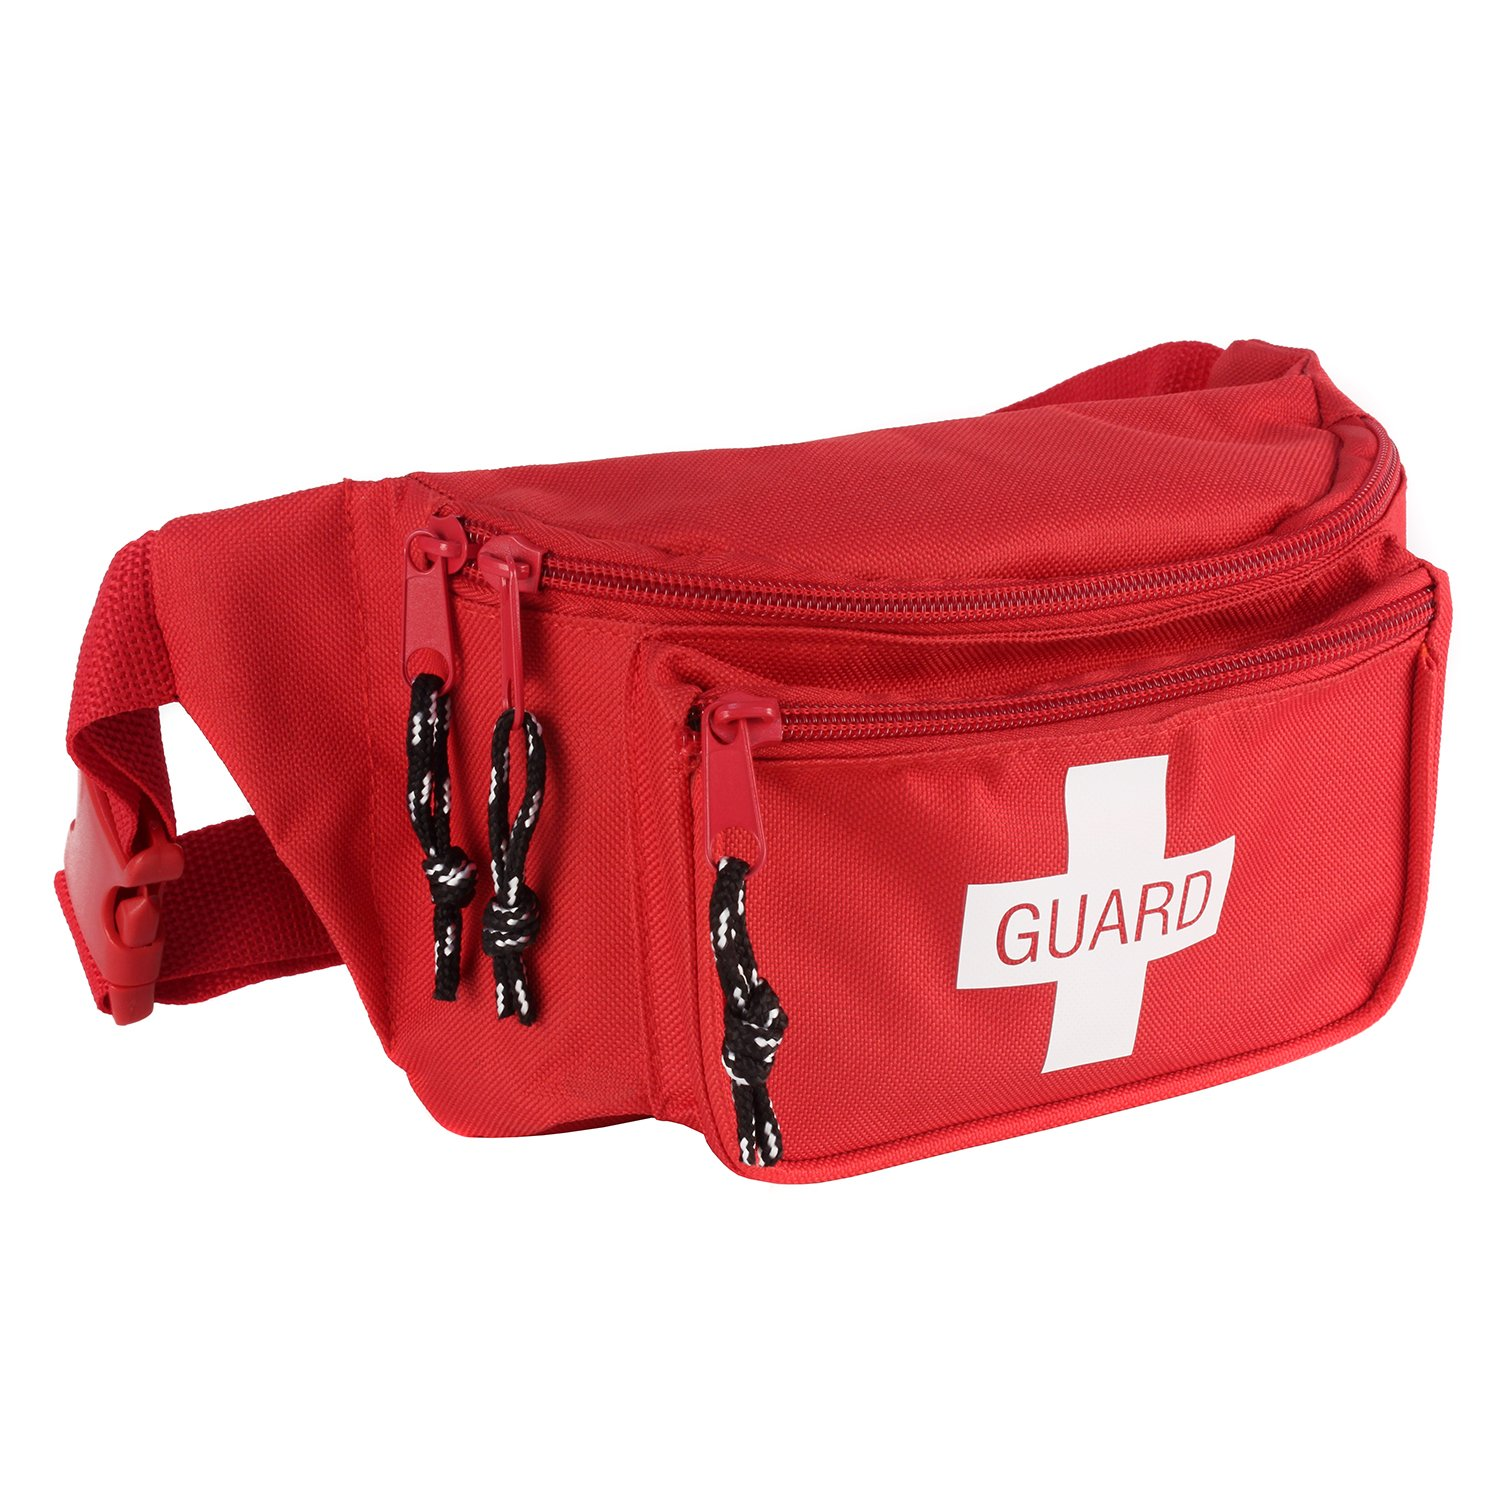 MediTac Lifeguard Fanny Pack / Hip Pack (Lifeguard Pack With Whistle)